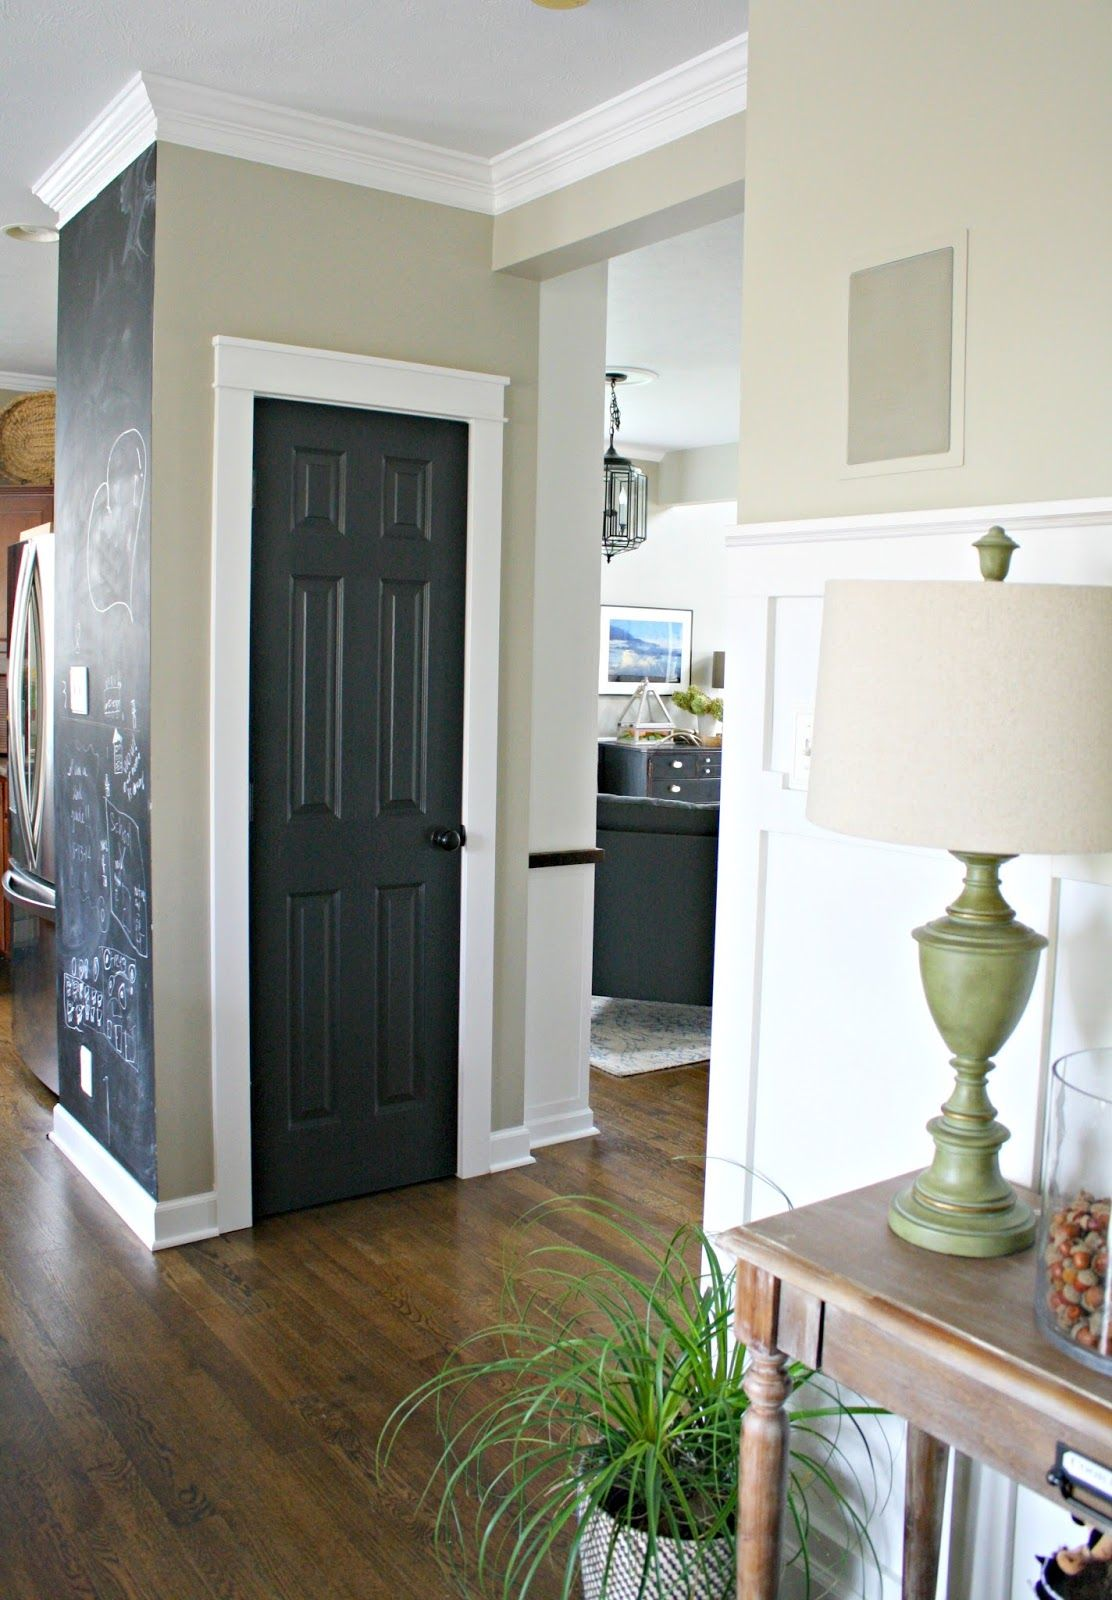 Black Interior Doors with White Trim - what a great look! Thrifty ...